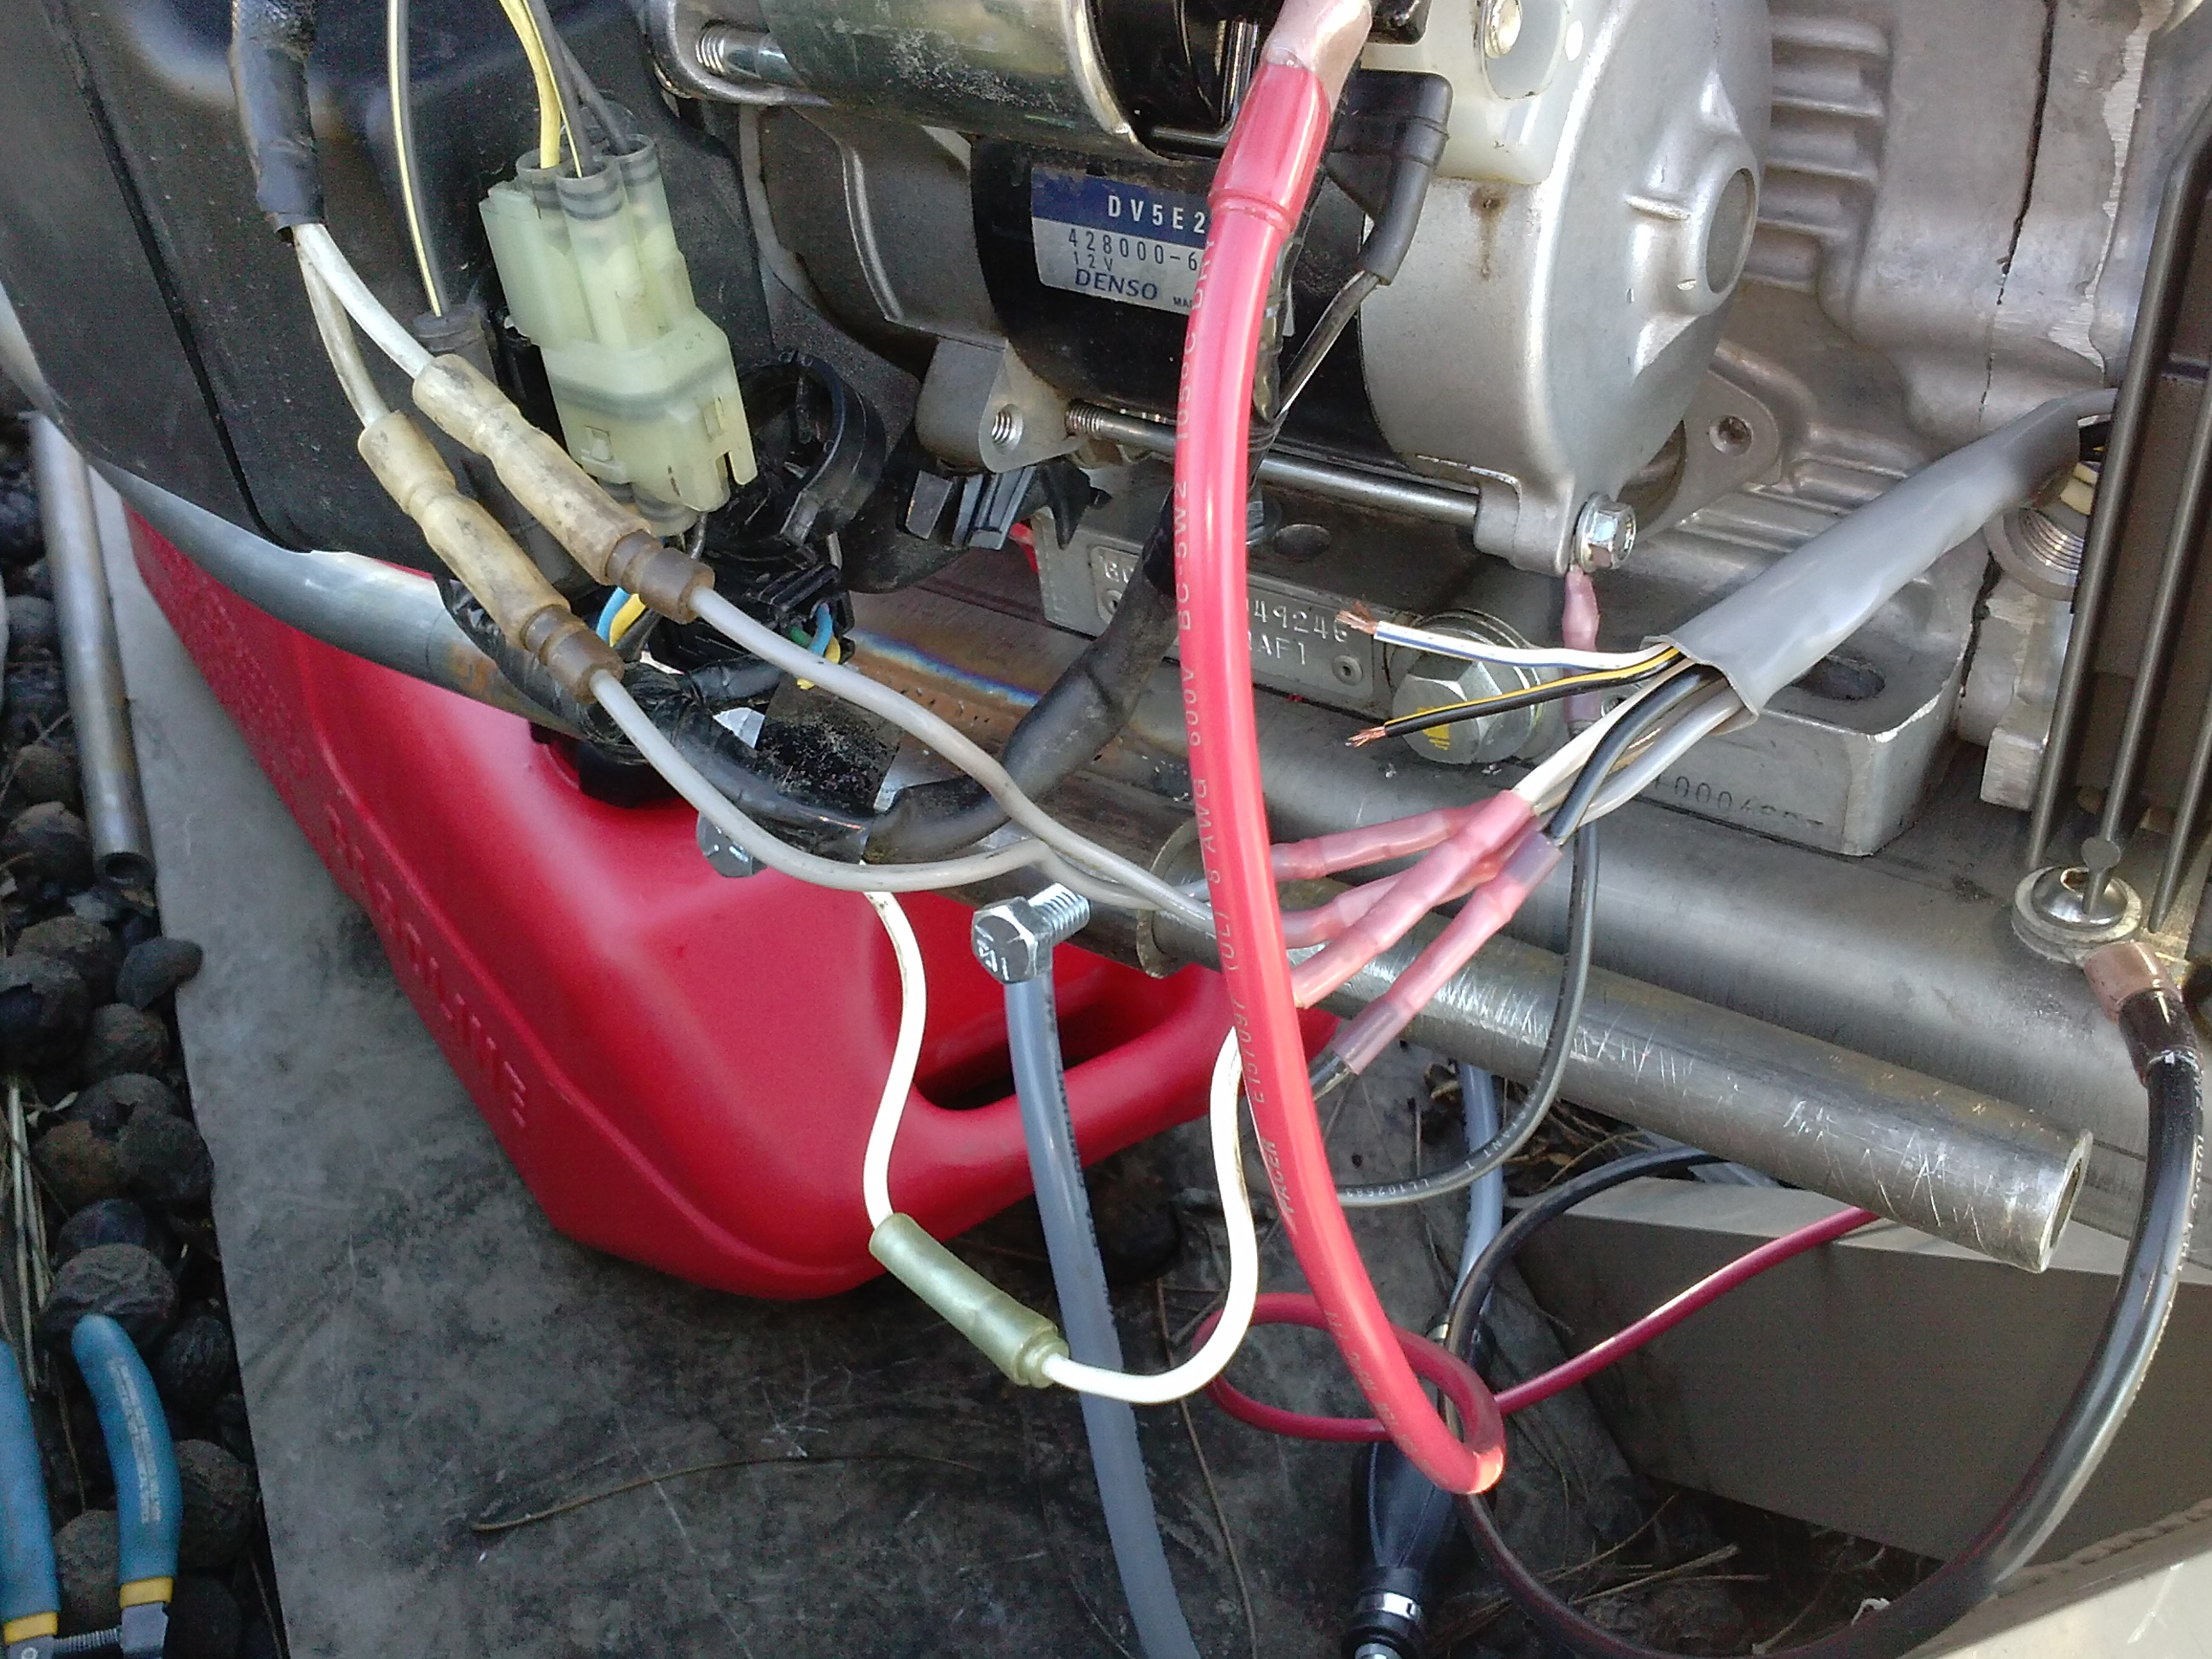 2013 12 01_204034_cam006151 i need help troubleshooting the charging system on a honda gx630 honda gx660 wiring diagram at reclaimingppi.co